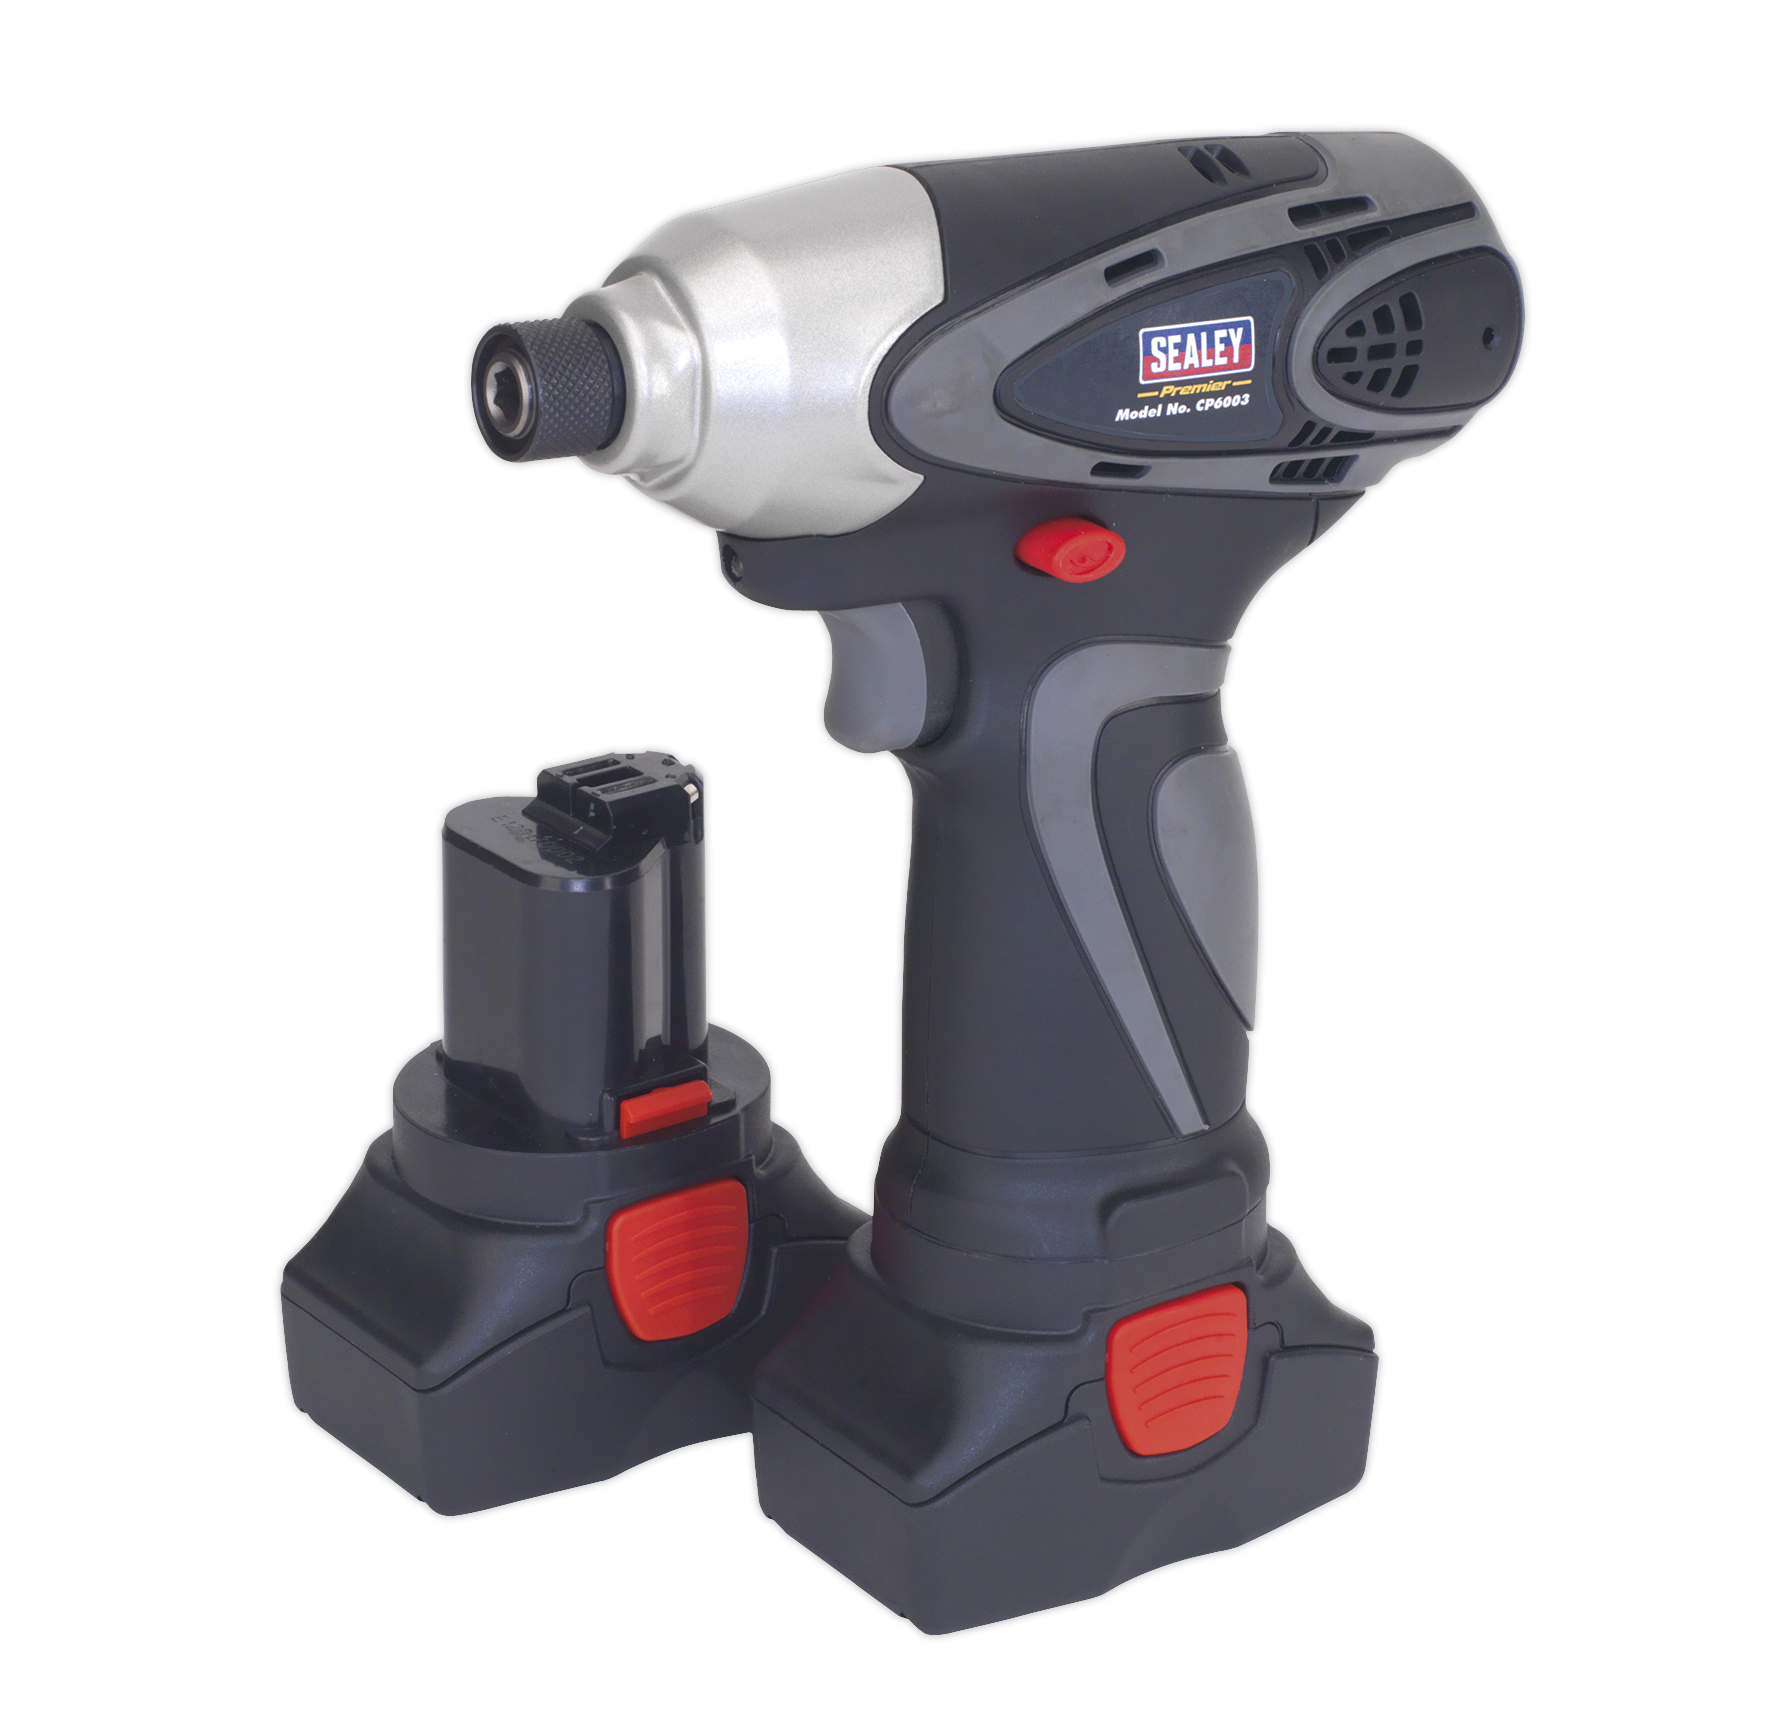 cp6003 sealey cordless impact driver 14 4v 2ah lithium ion. Black Bedroom Furniture Sets. Home Design Ideas